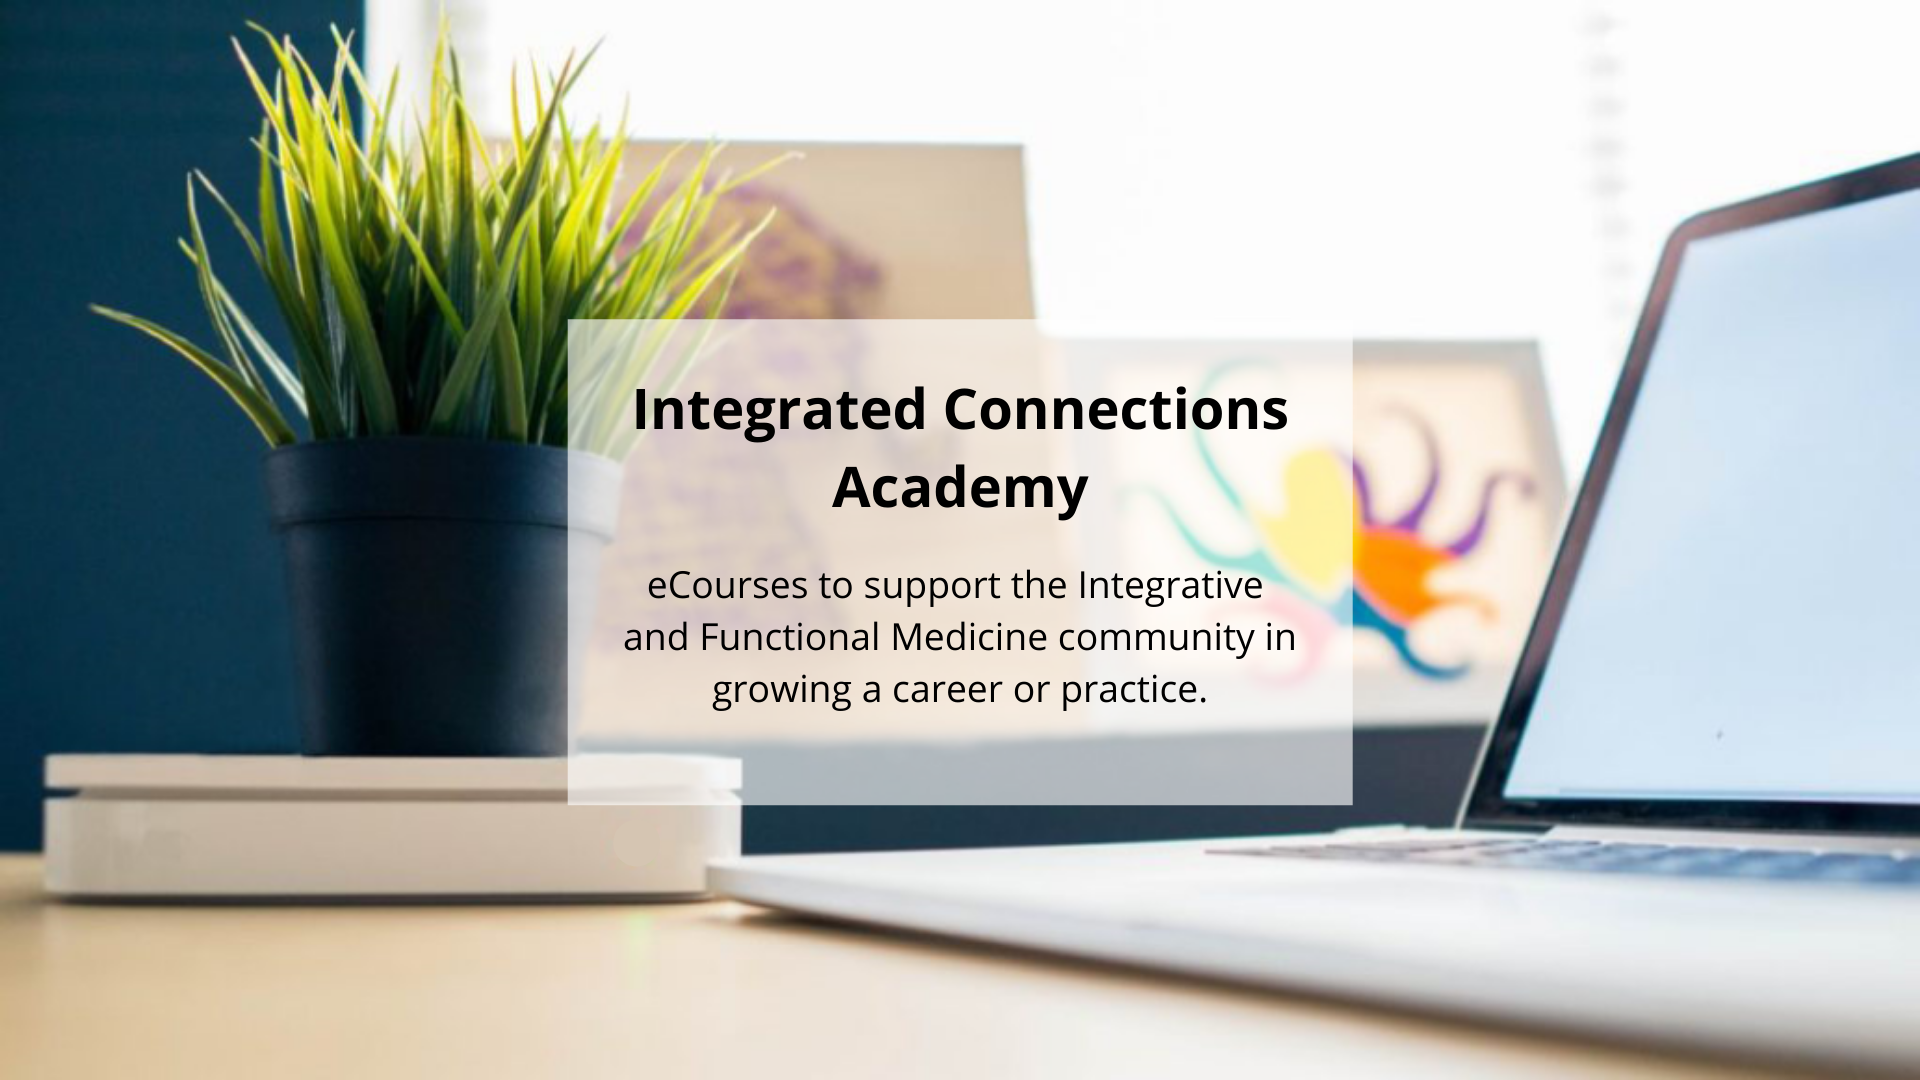 Integrated Connections Academy